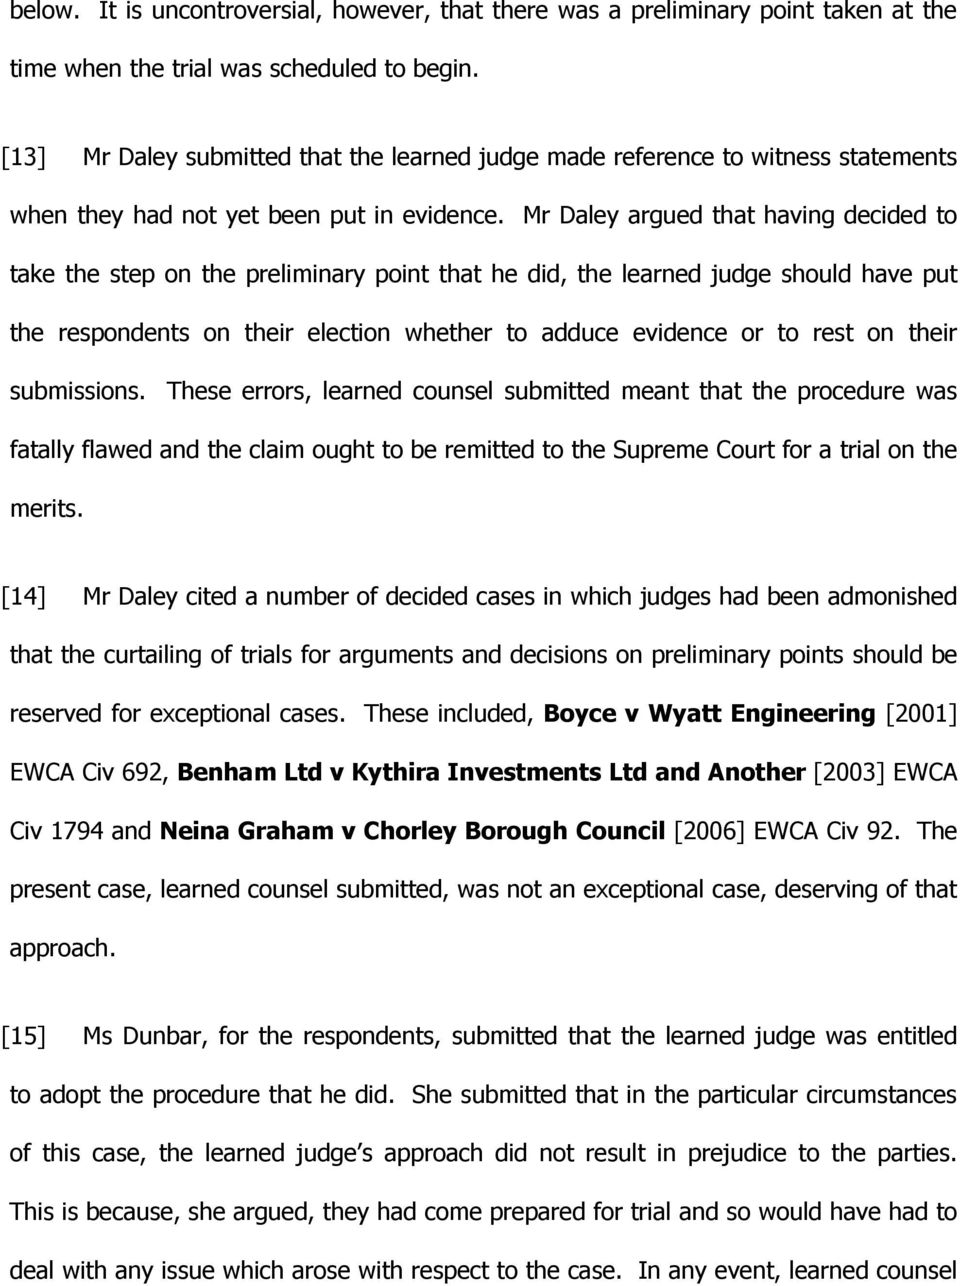 Mr Daley argued that having decided to take the step on the preliminary point that he did, the learned judge should have put the respondents on their election whether to adduce evidence or to rest on